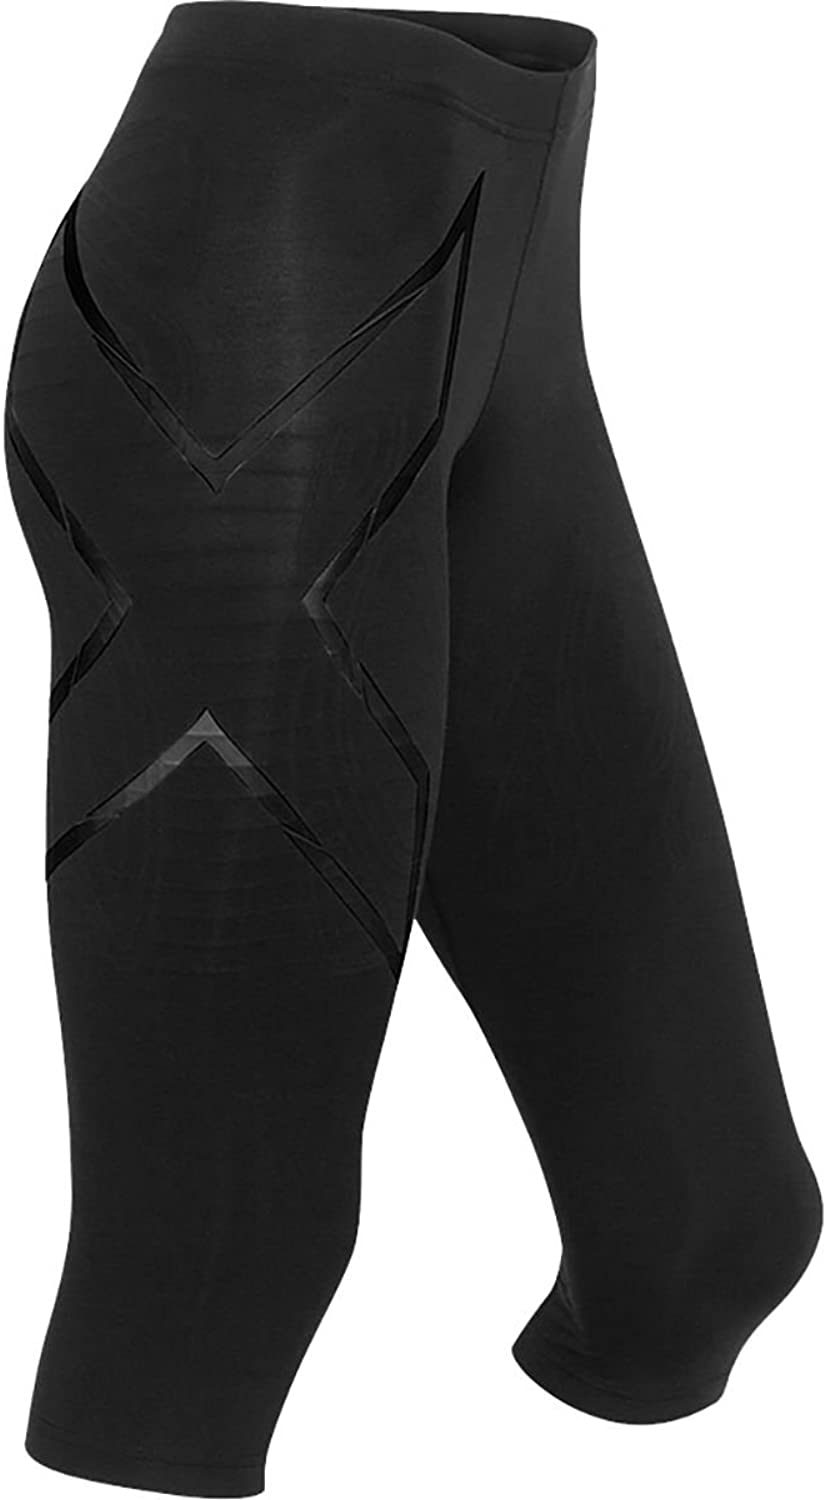 2XU Women's MCS Thermal 3 4 Compression Tights